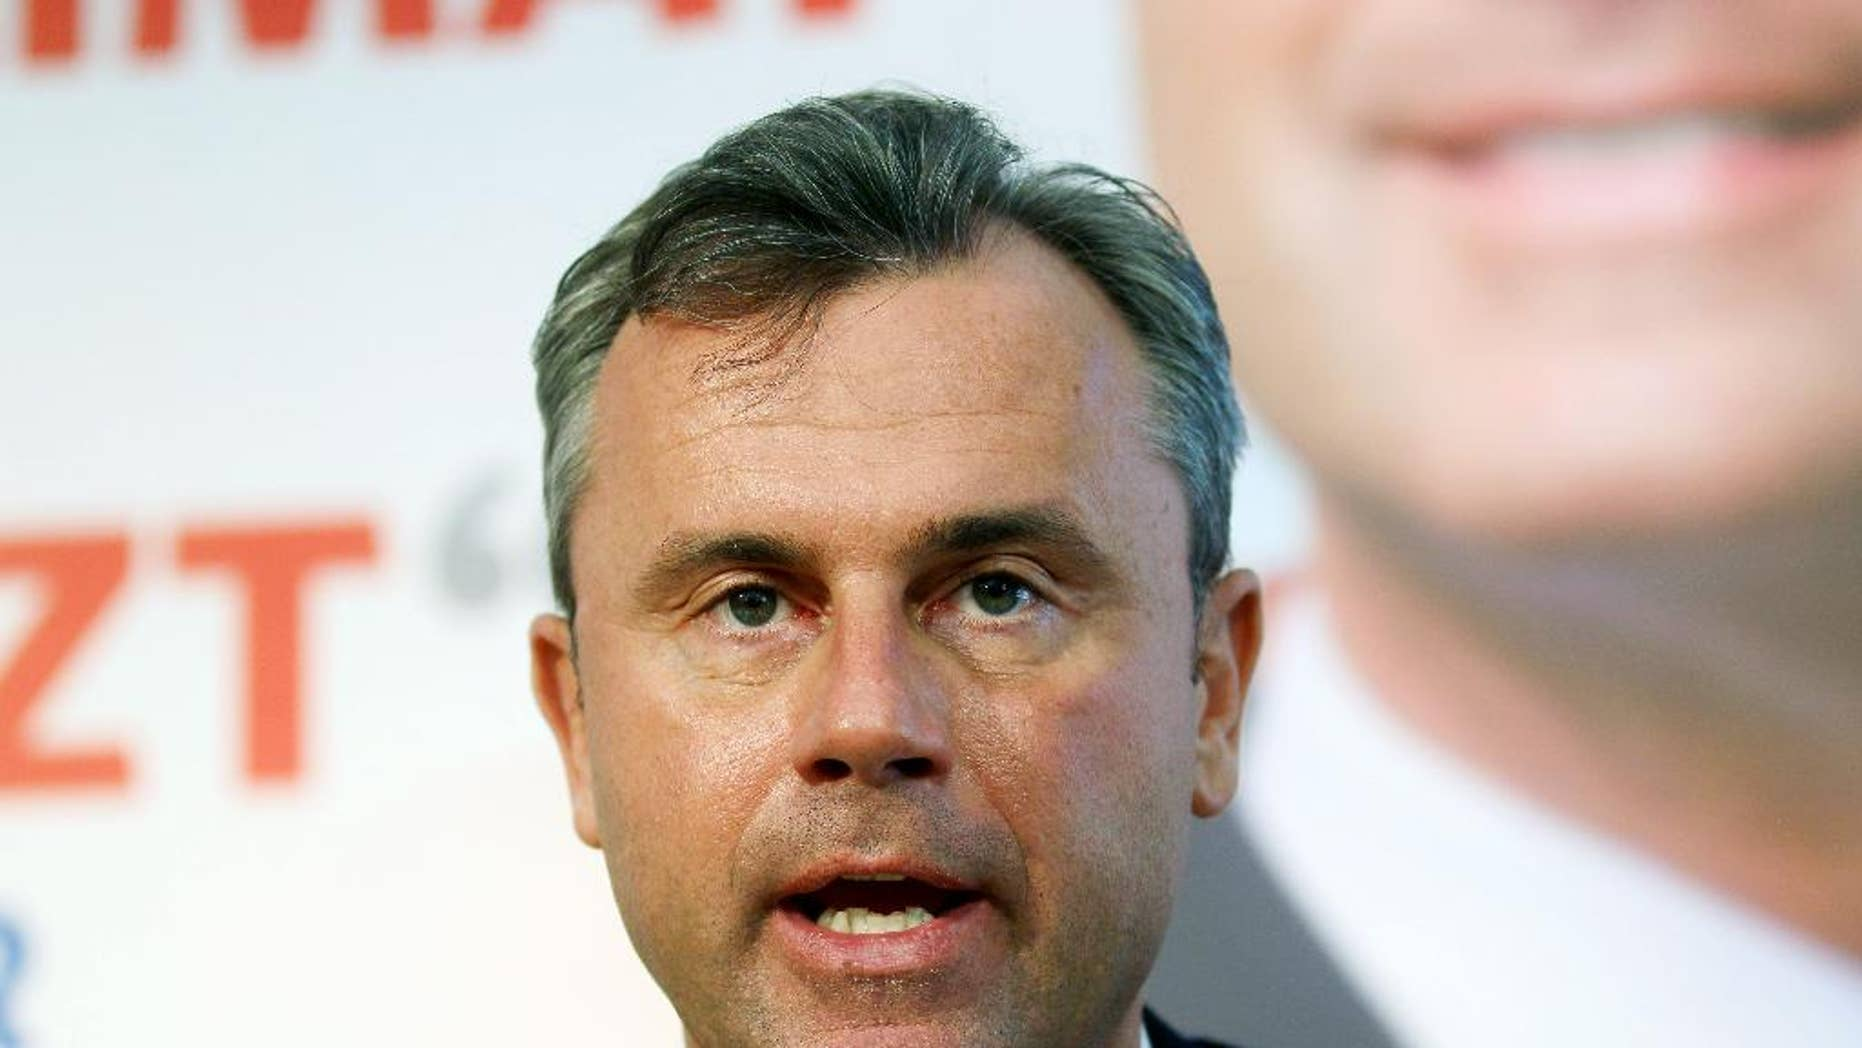 """FILE - In this Monday, March 14, 2016 file photo, Norbert Hofer, candidate for Sunday's presidential elections of Austria's Freedom Party, FPOE, speaks during a news conference in Vienna, Austria. Even before a vehemently anti-EU party won strong support in Austria, the European Union's top official acknowledged that the 28-nation bloc was in trouble. """"We are facing very tough times,"""" European Commission President Jean-Claude Juncker told parliamentarians this month. """"We are not very popular when we advocate for Europe.""""Those comments were reinforced just days later with the victory Sunday of an anti-EU right-wing party in the first round of Austria's presidential election. (AP Photo/Ronald Zak, File)"""